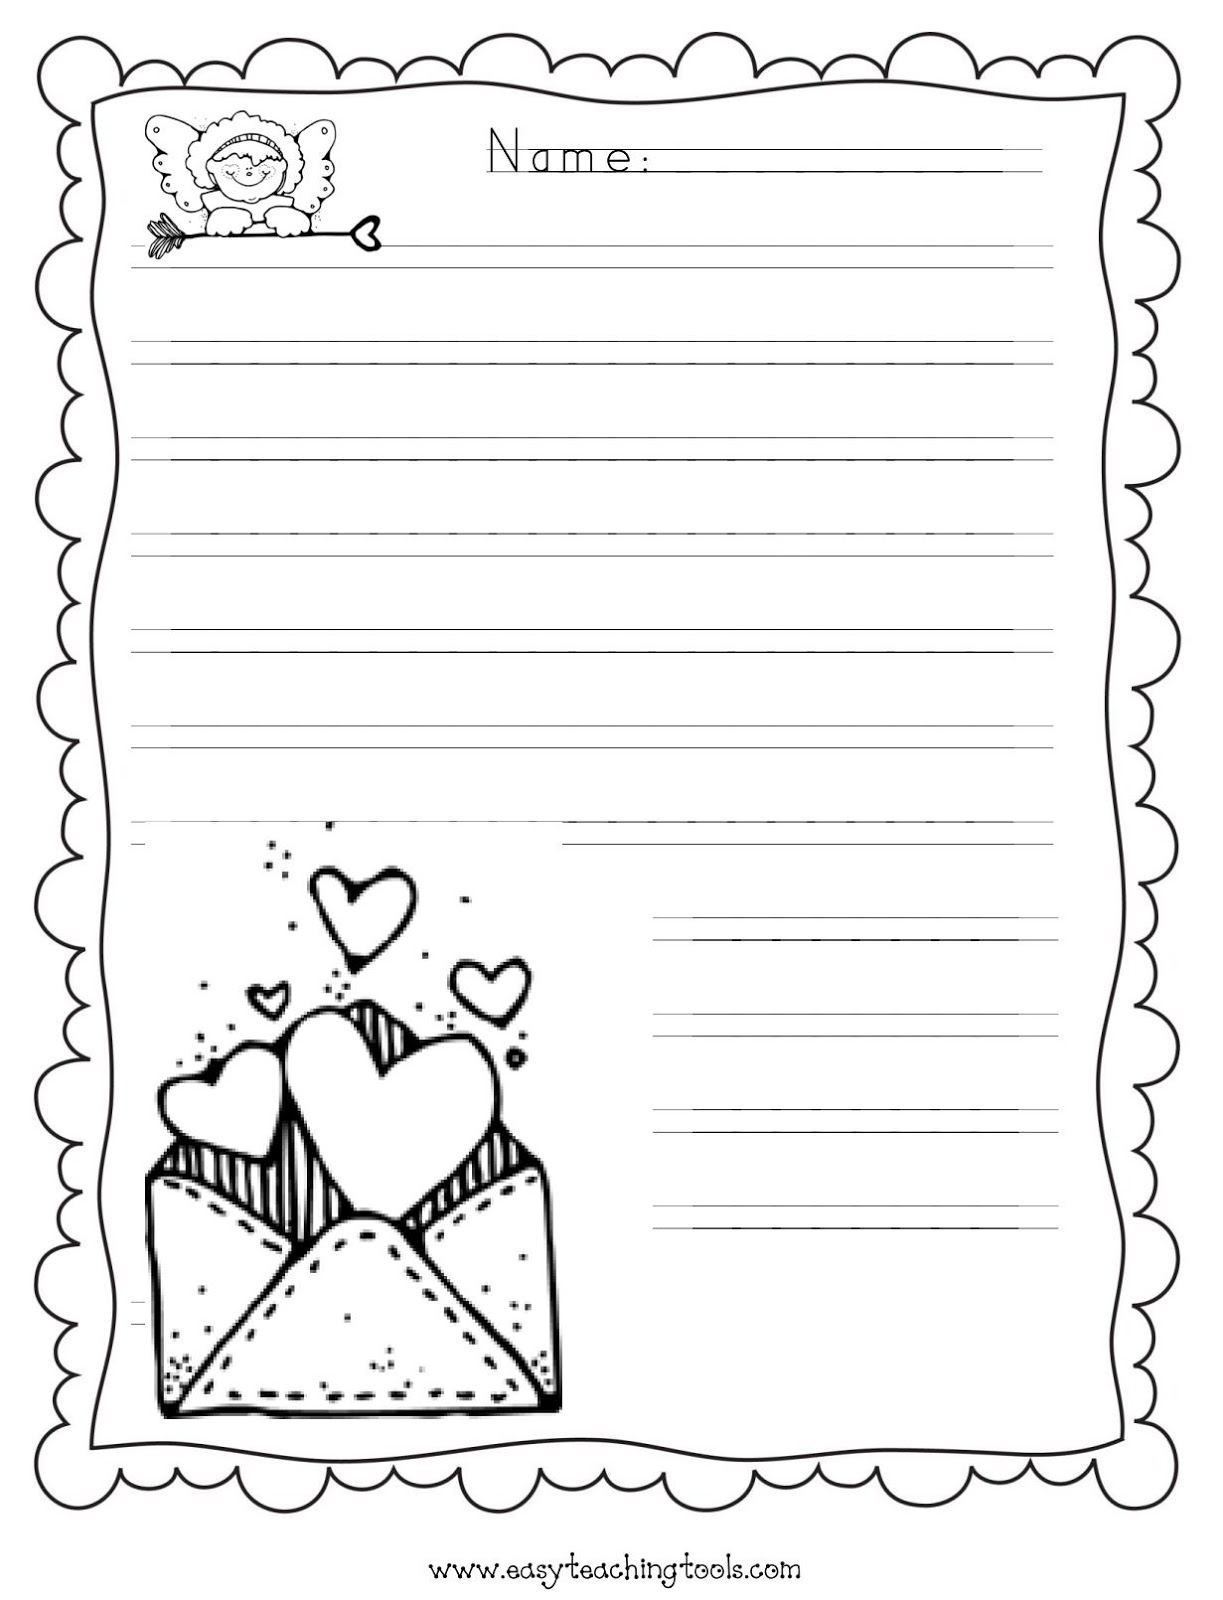 handwriting without tears worksheets Writing practice templates flash cards award maker printable worksheets calendars sign up for special offers and news sent directly to you.